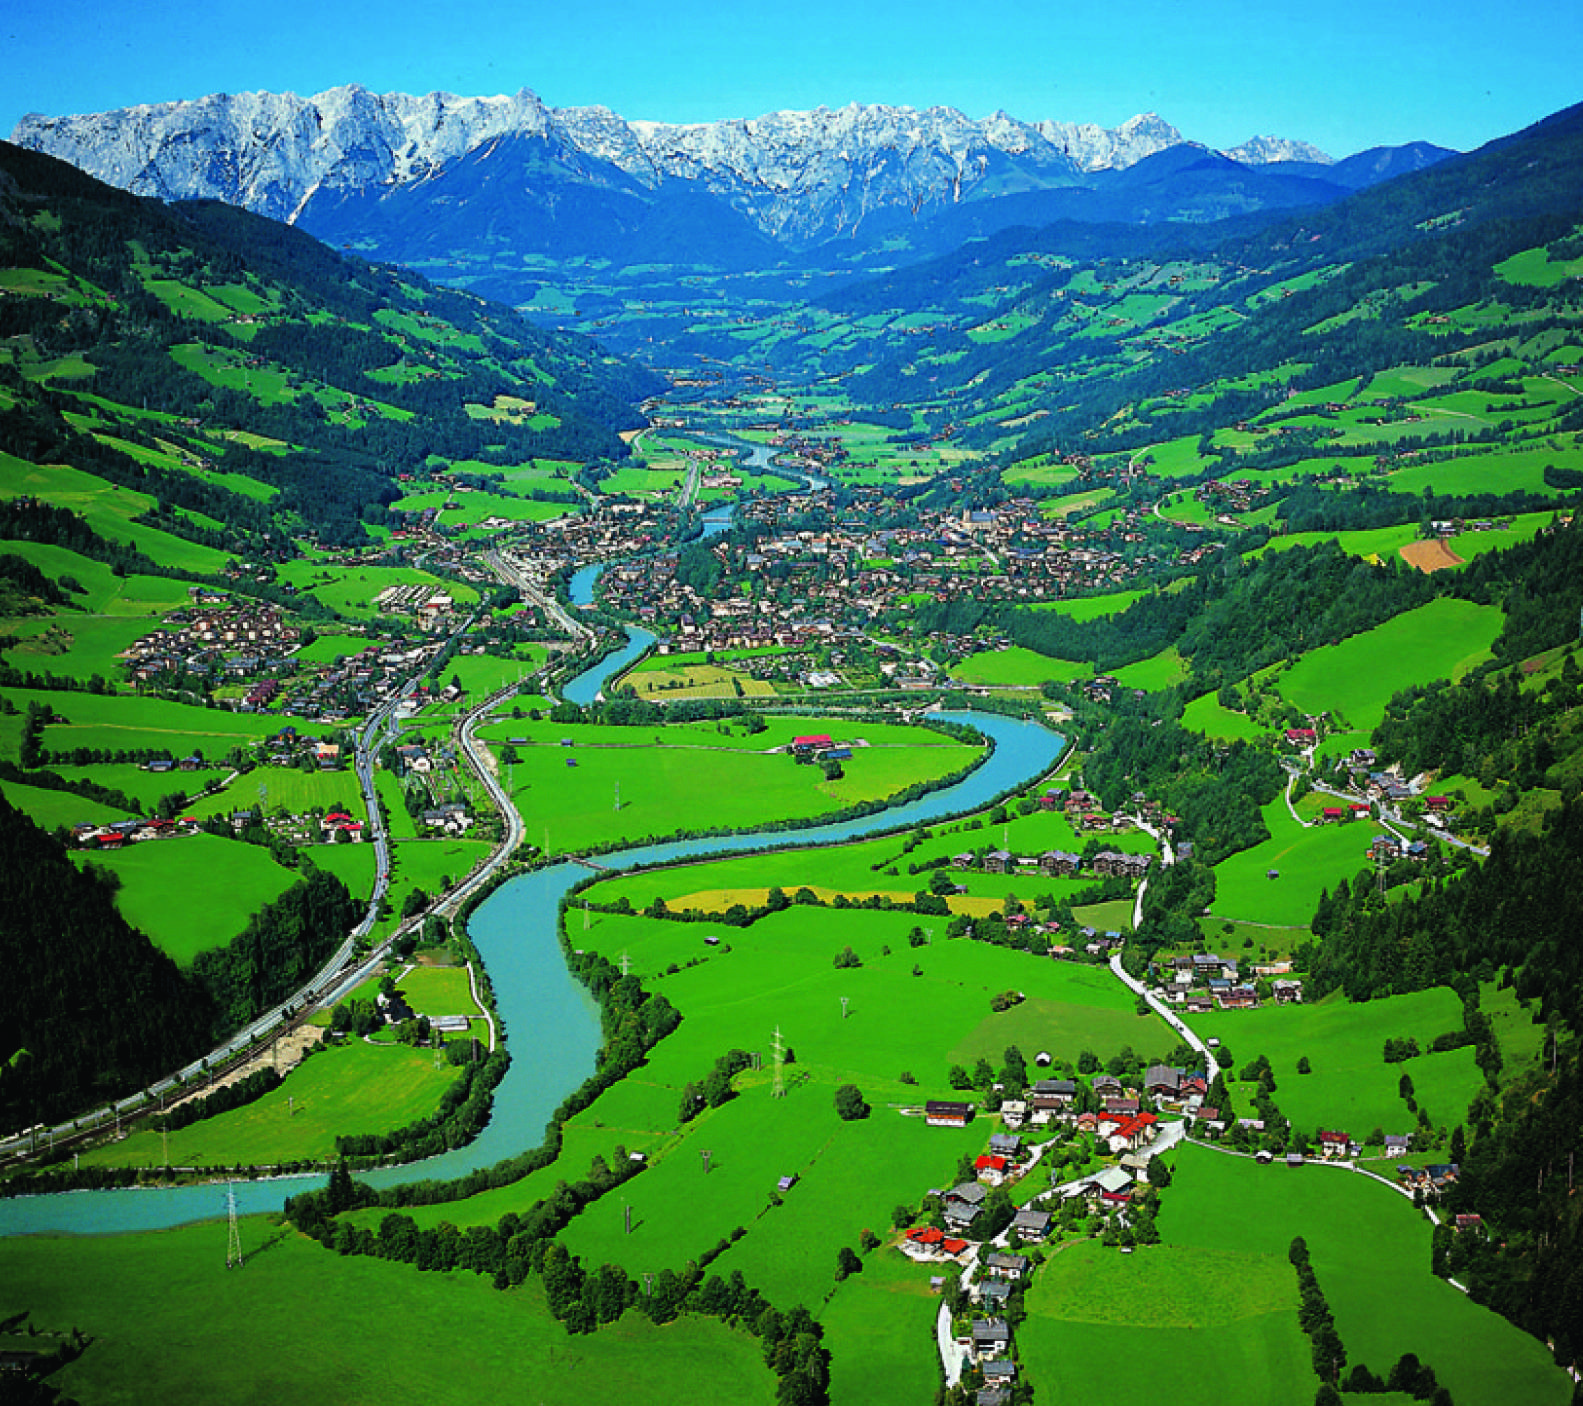 singles sankt johann im pongau Get train times and buy train tickets for st johann im pongau to münchen flughafen terminal from st johann im pongau to münchen flughafen terminal start at €3428 when you book at least 28 days in advance 14 days in advance find this ticket €3428 1 day in advance €4479 avg single price on the day.